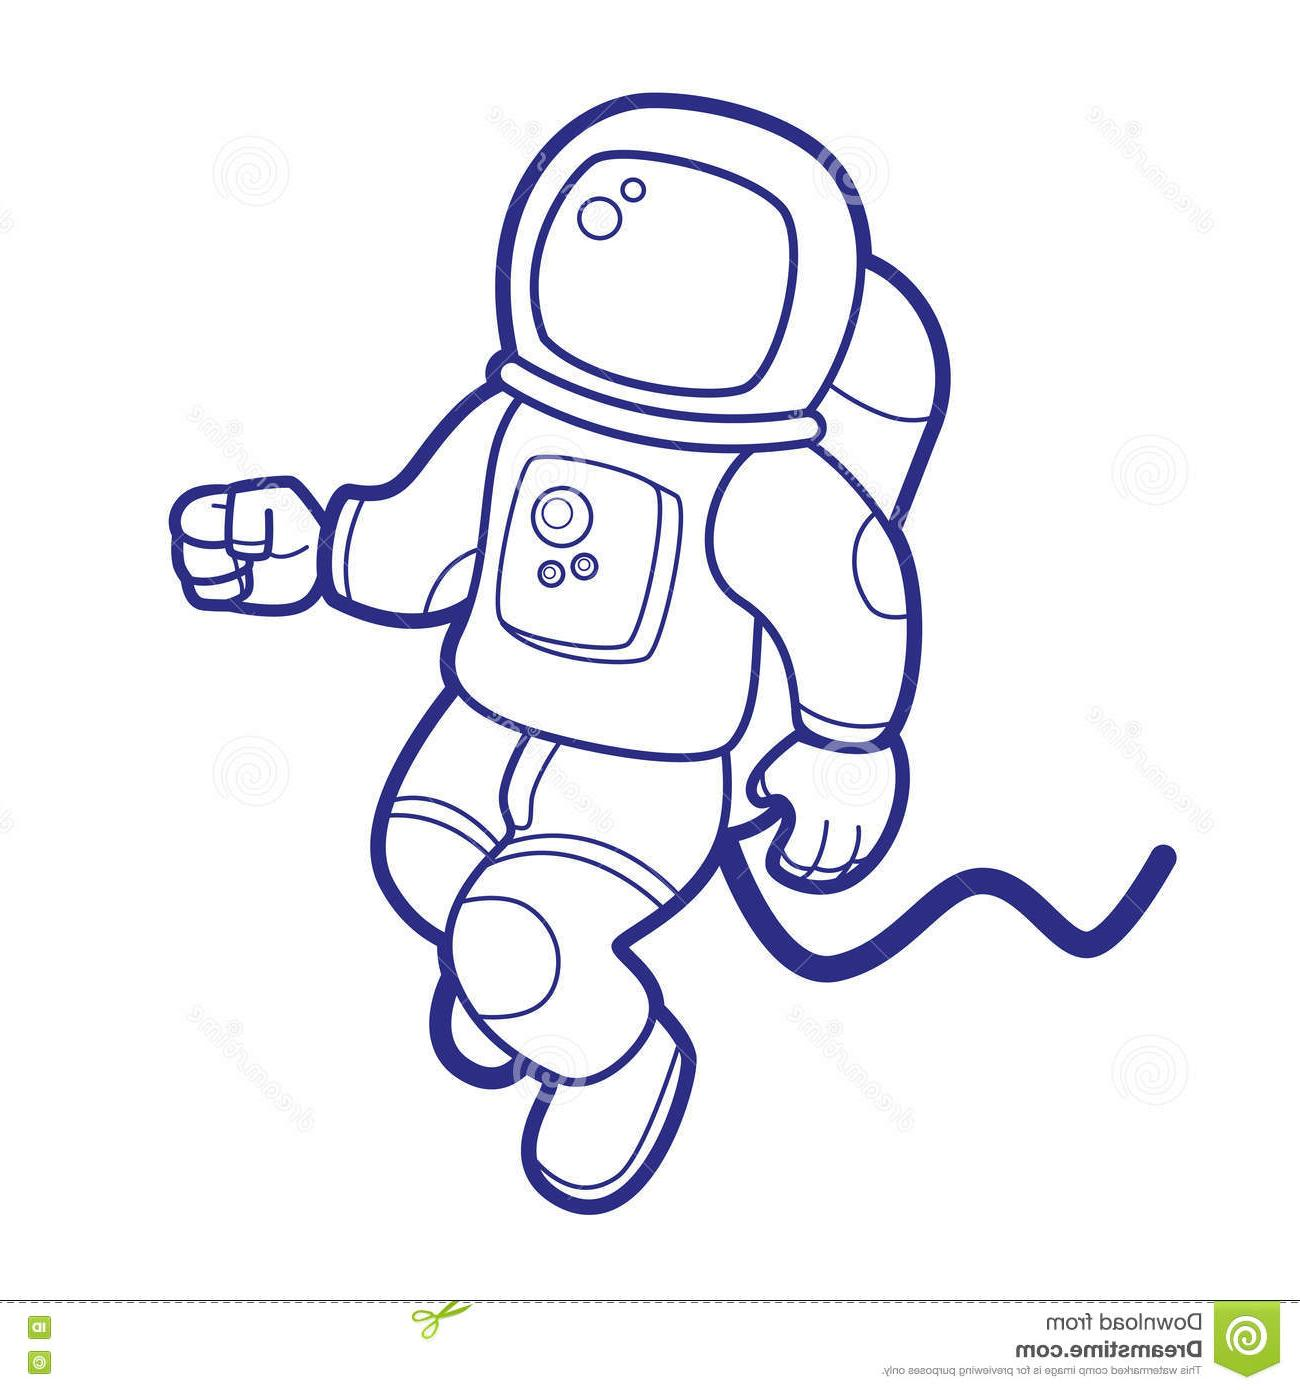 Astronaut vector clipart svg freeuse library Best Astronaut Vector Drawing » Free Vector Art, Images, Graphics ... svg freeuse library